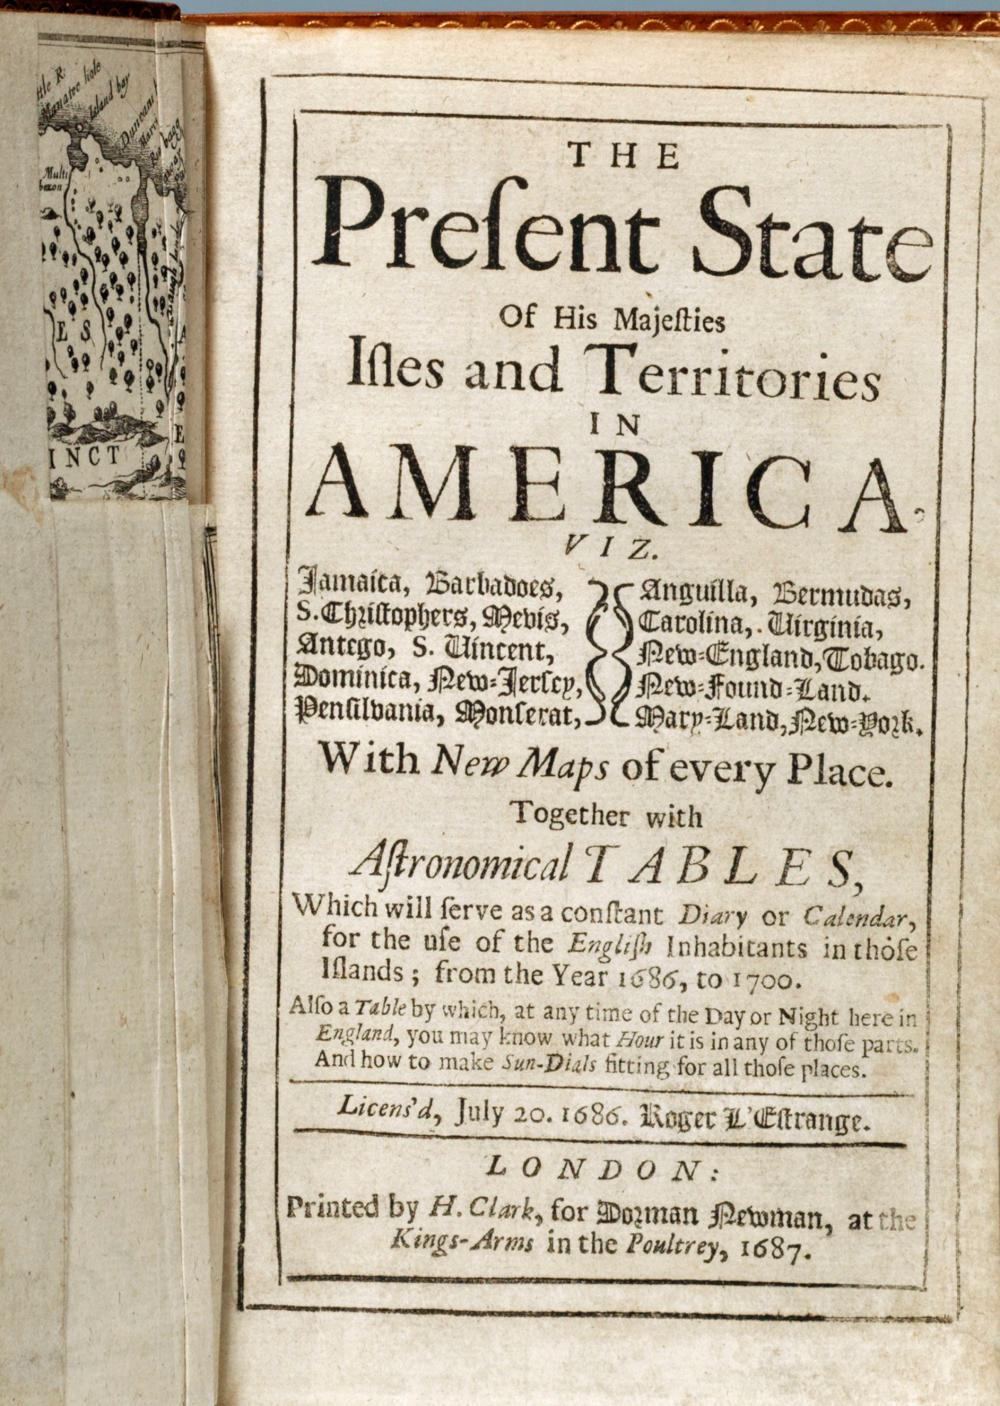 R. Blome on His Majesty's Territories in America, 1687 1st Edition with 7 Folding Morden Maps Inc. Carolina, Virginia, New York & Bermuda